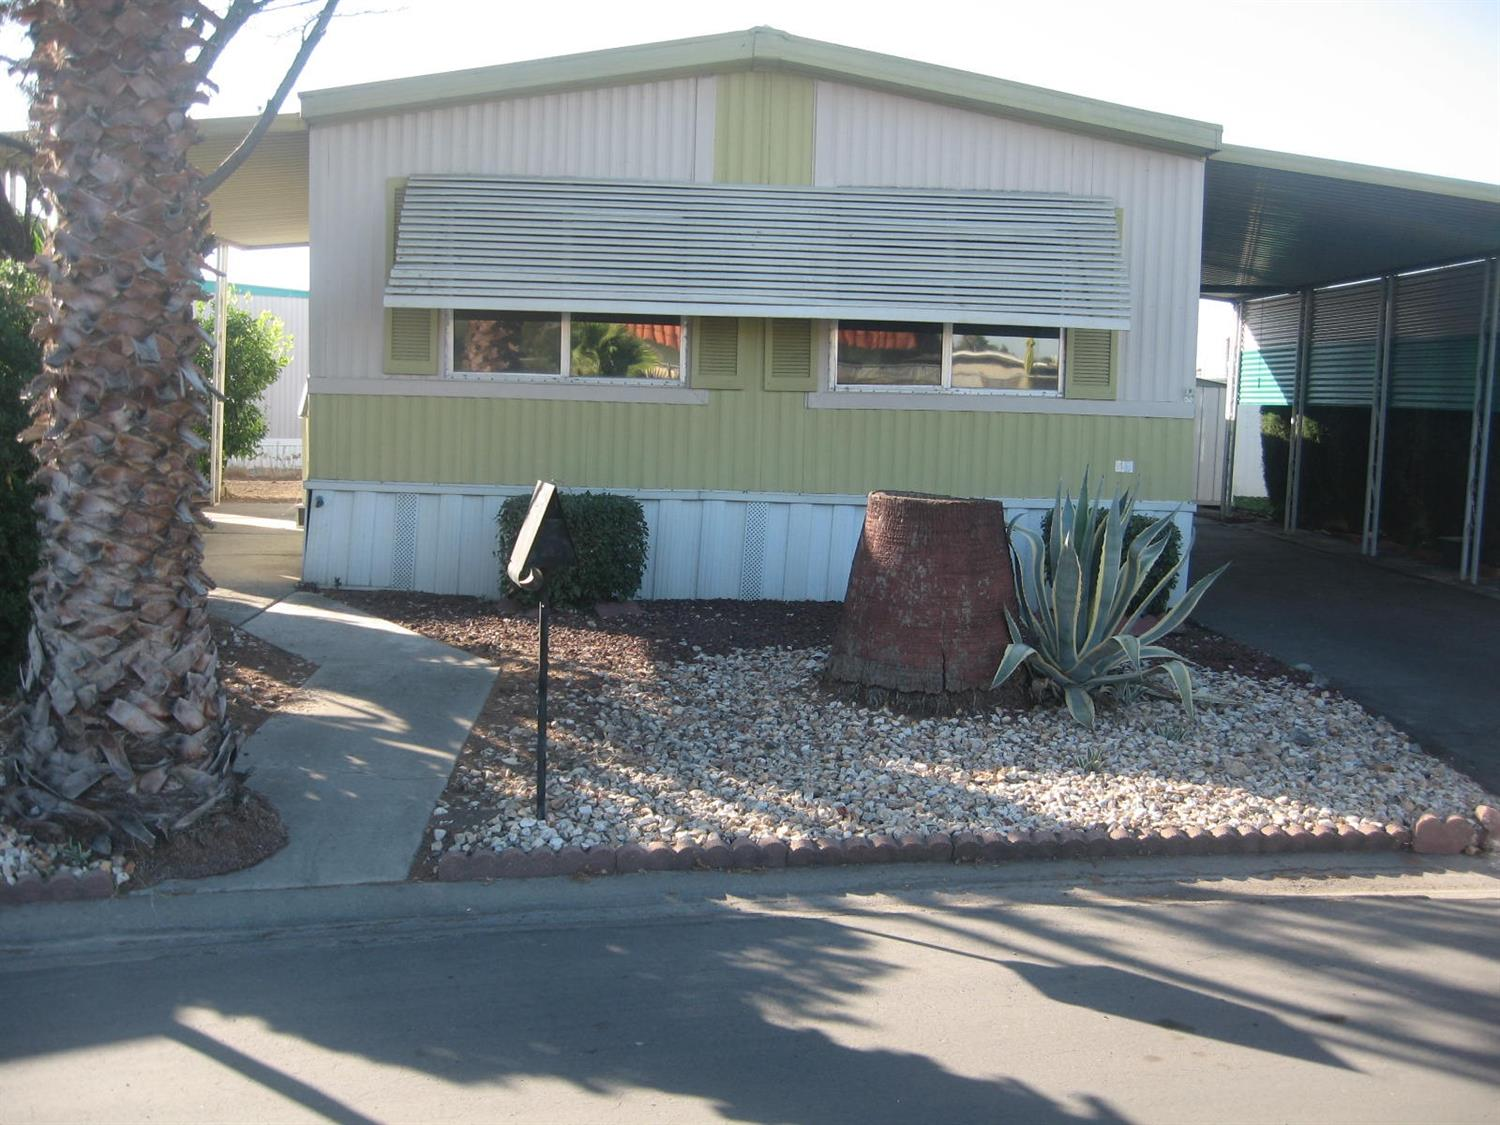 $22,000 - 2Br/1Ba -  for Sale in Stockton